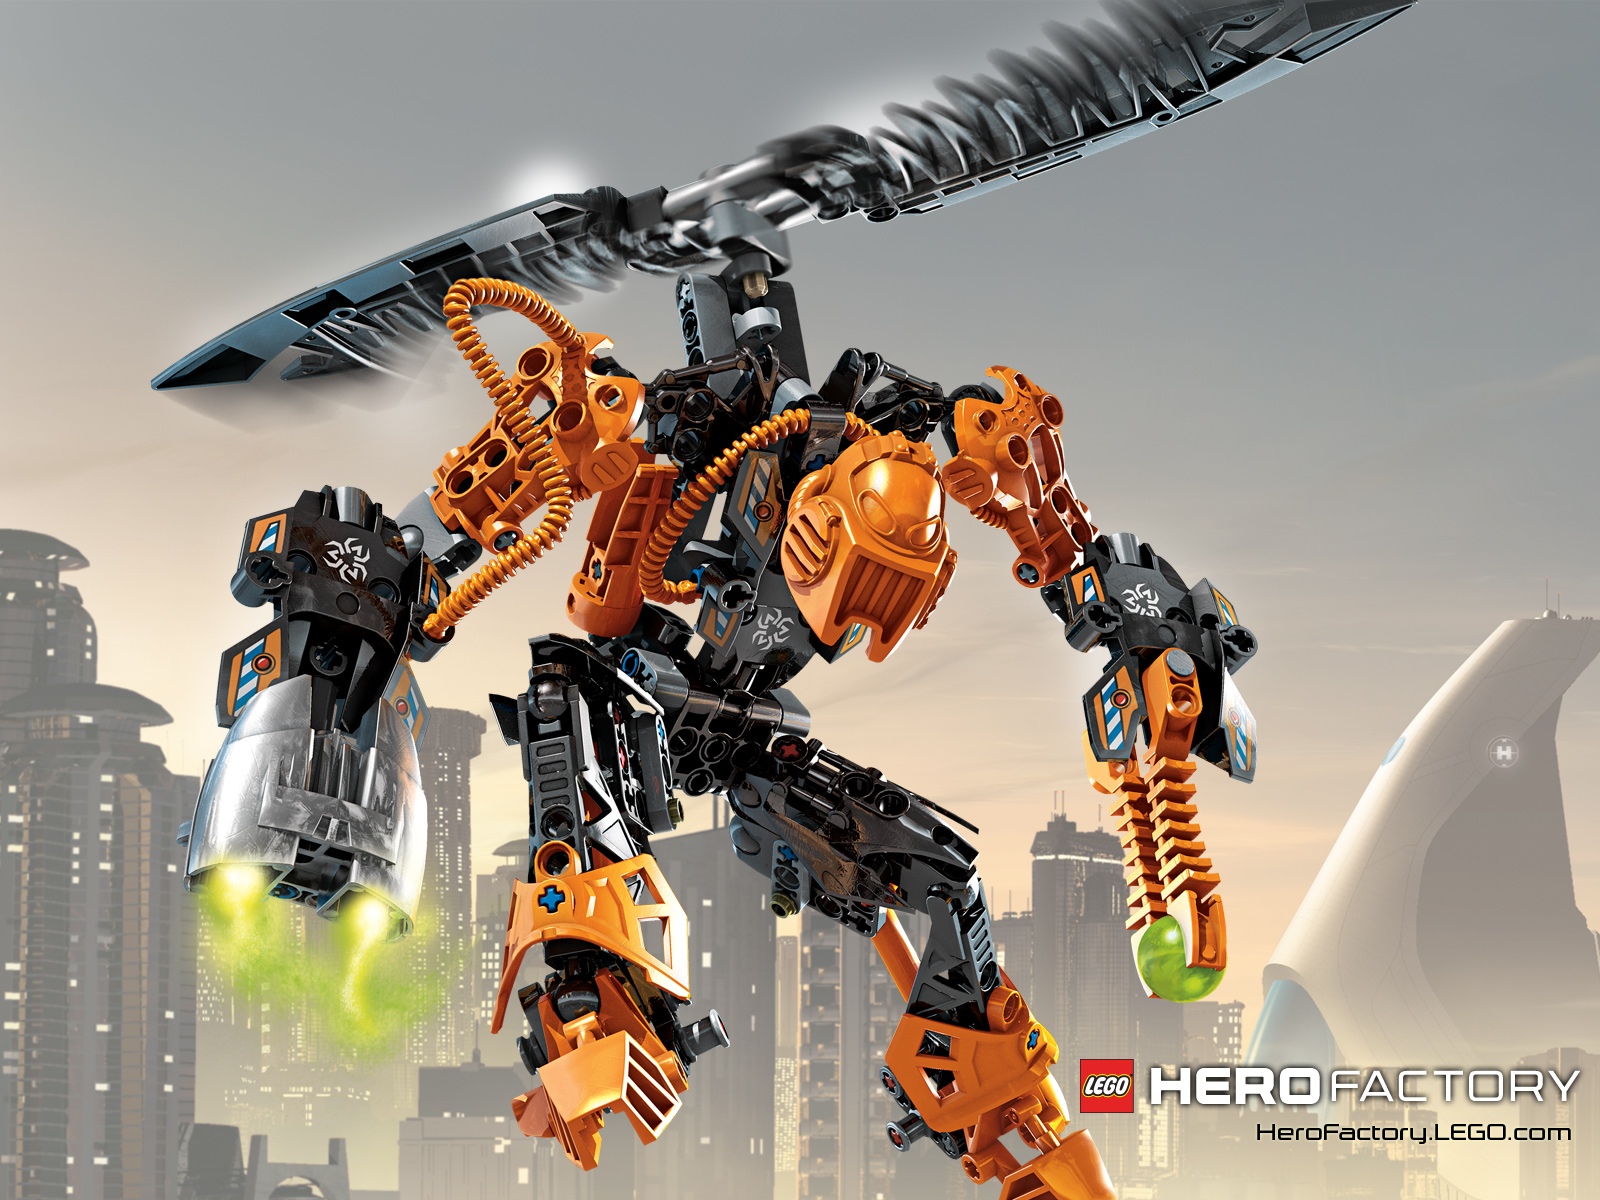 Lego herofactory wallpaper and background image - Herofactory lego com gratuit ...